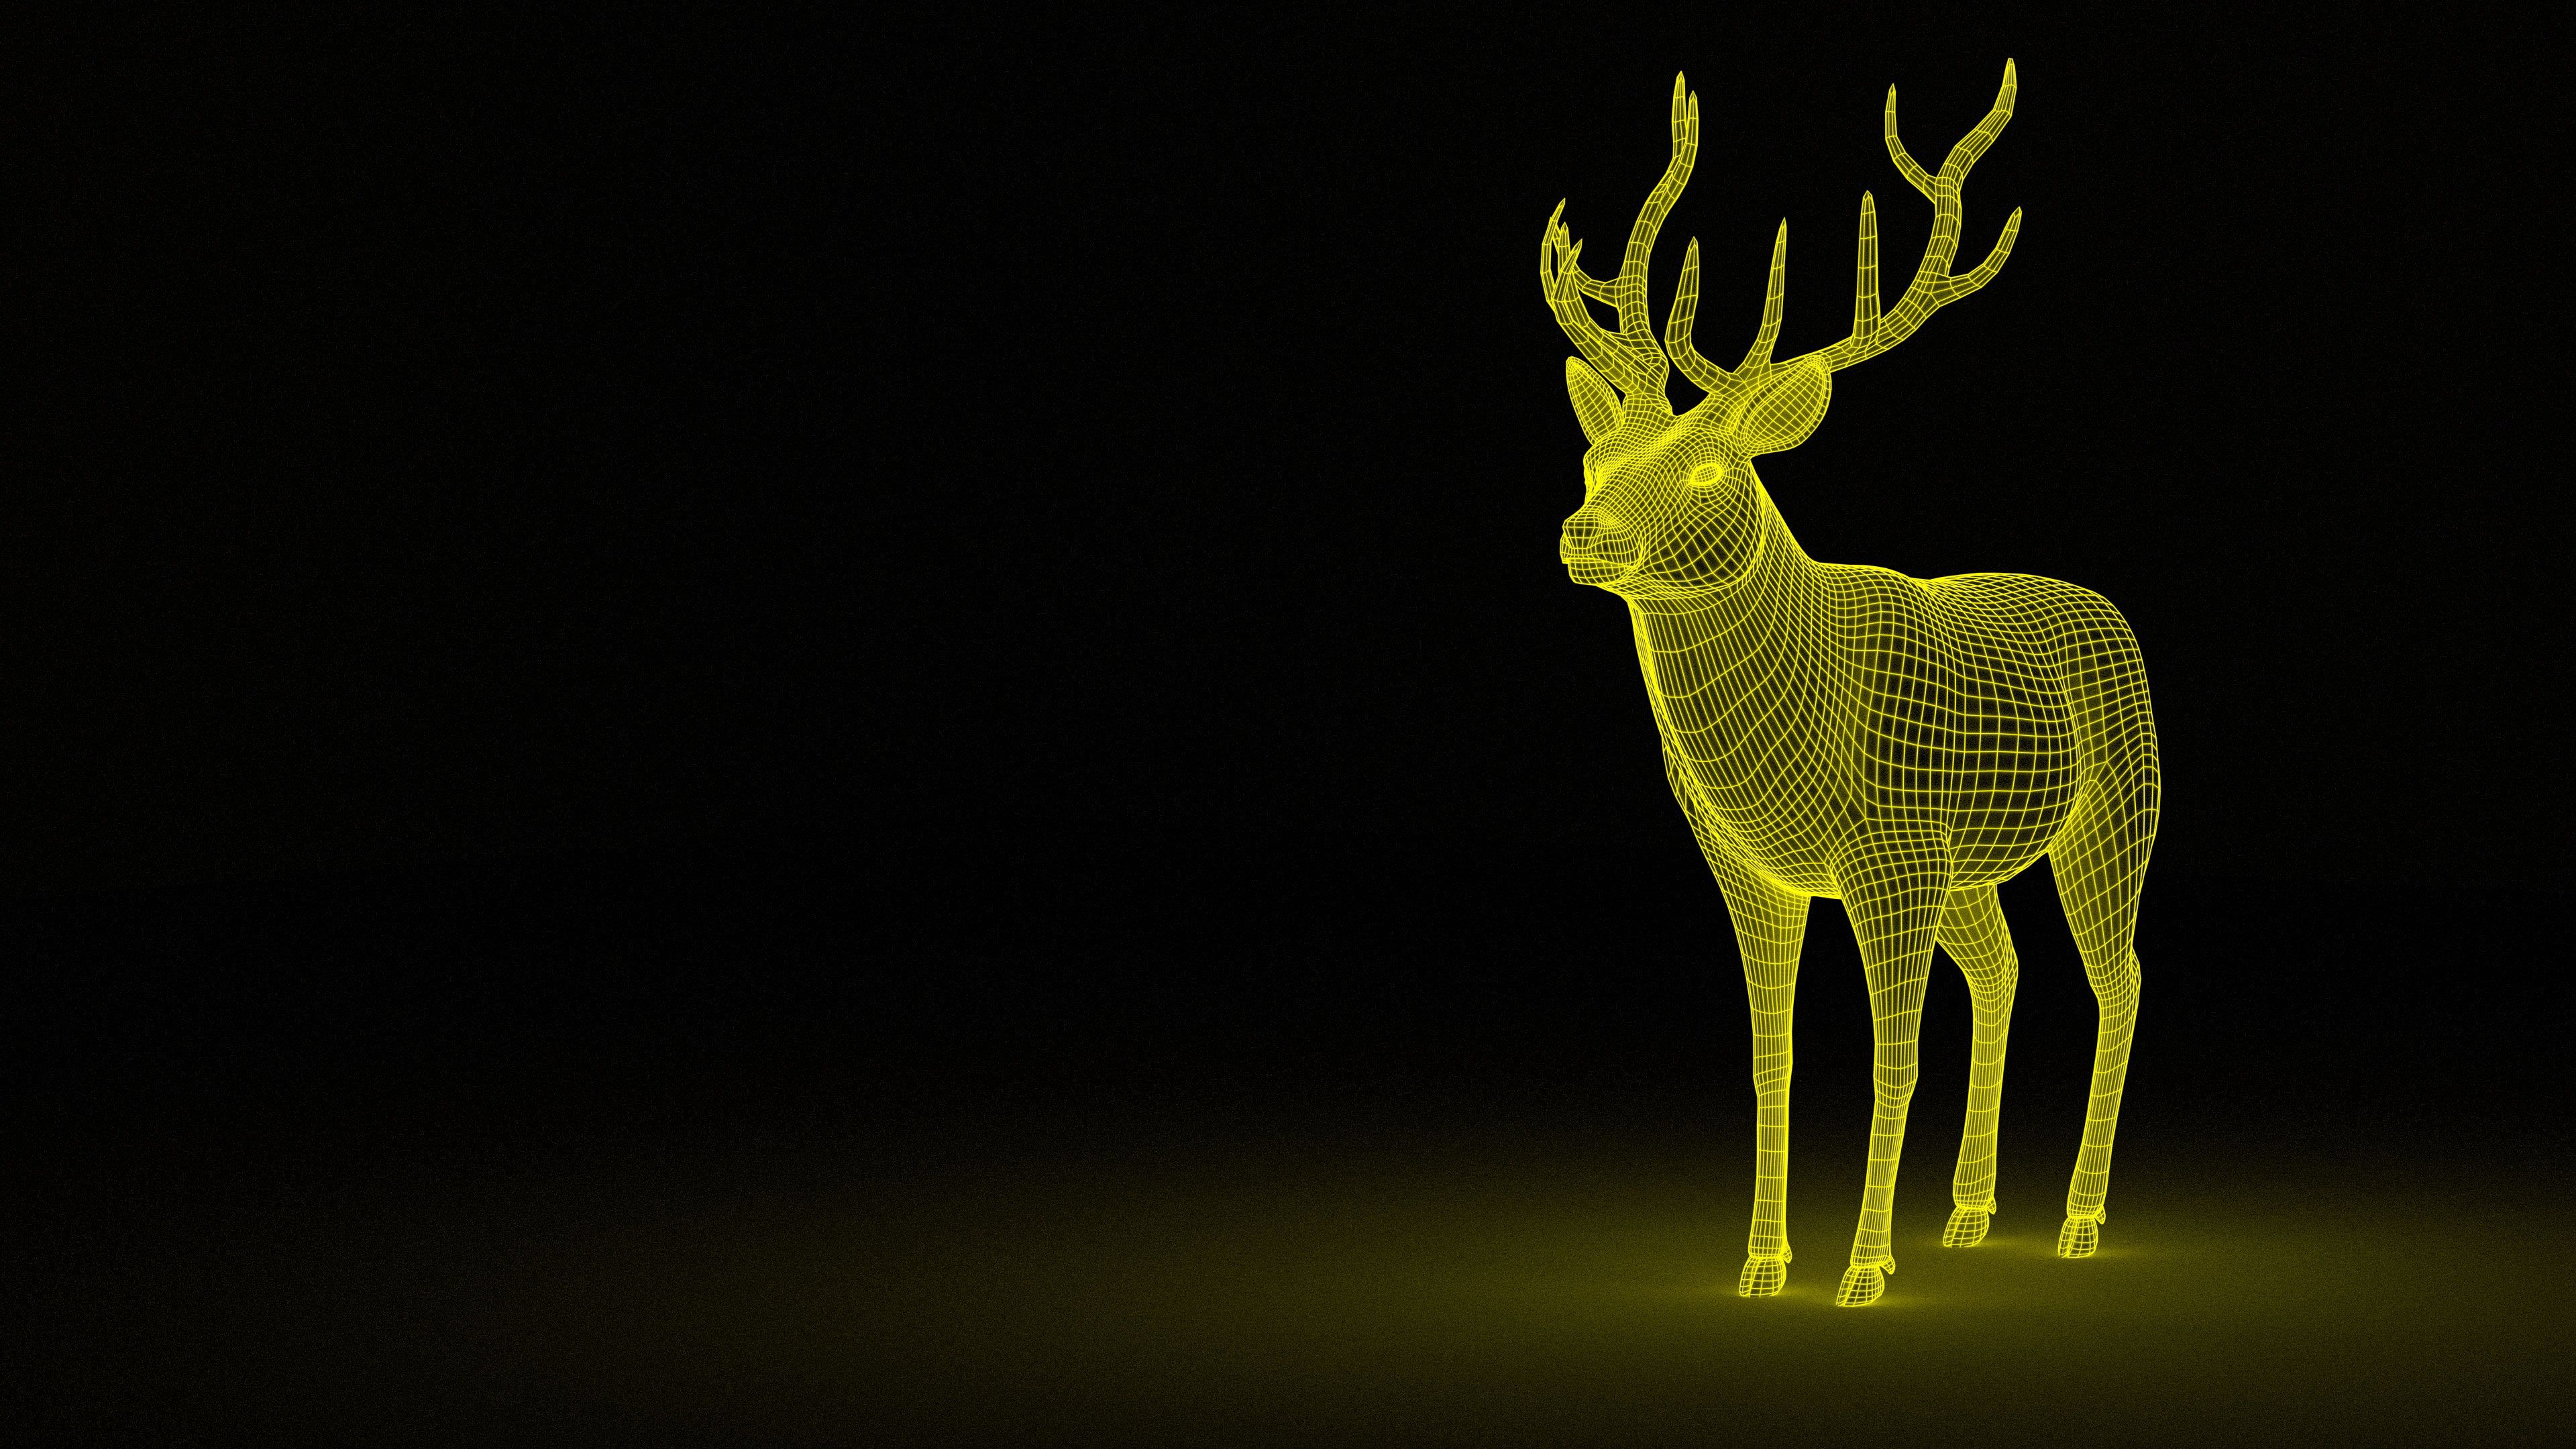 110893 download wallpaper Abstract, Deer, Backlight, Illumination, Grid screensavers and pictures for free